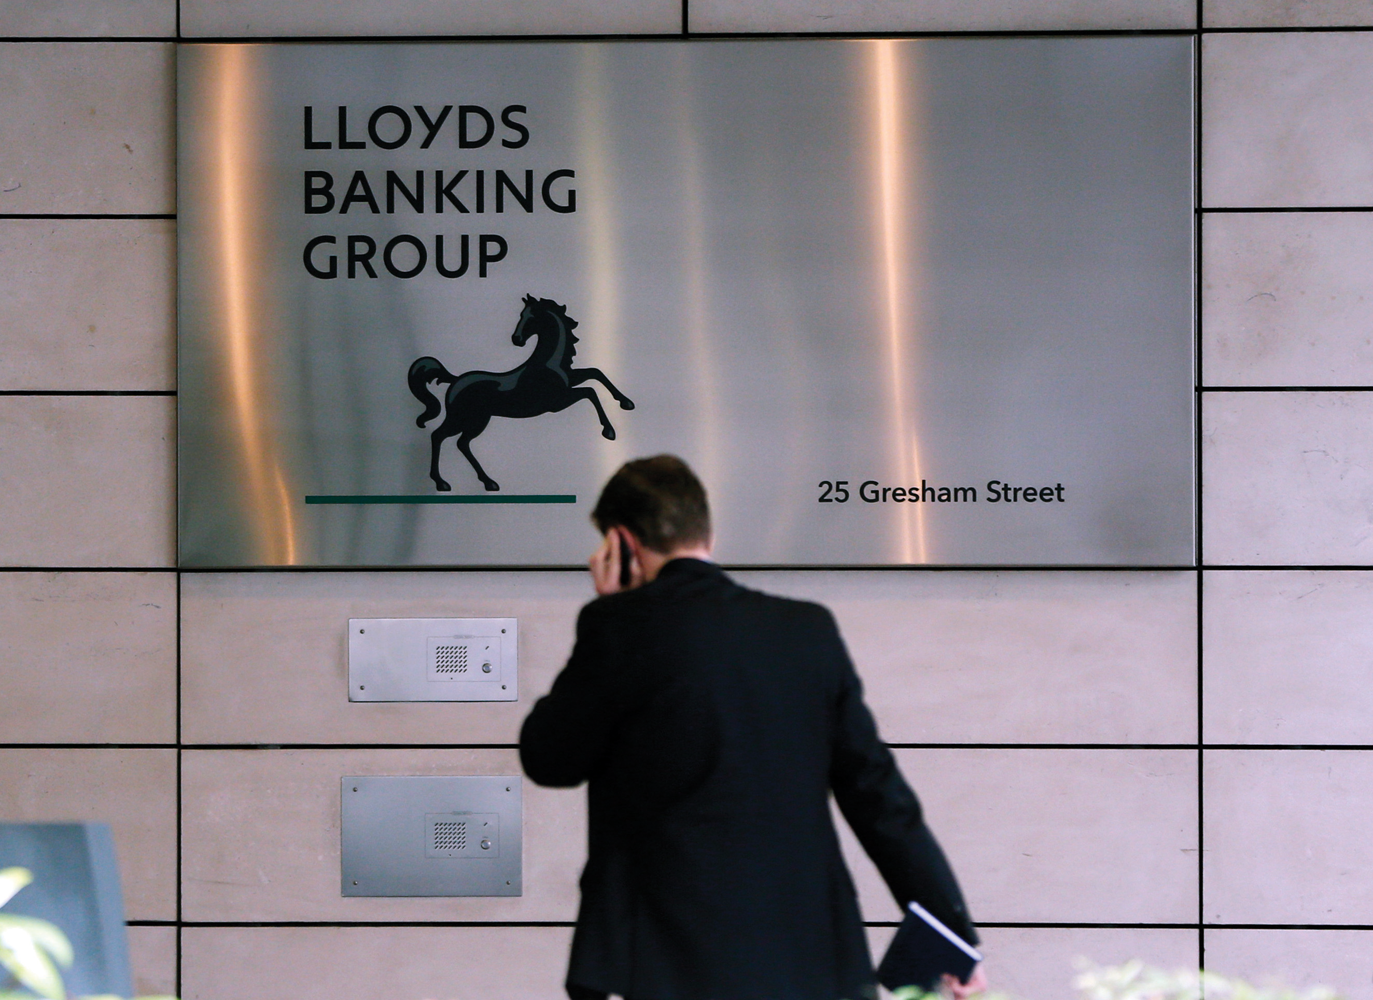 Lloyds Banking Group brand